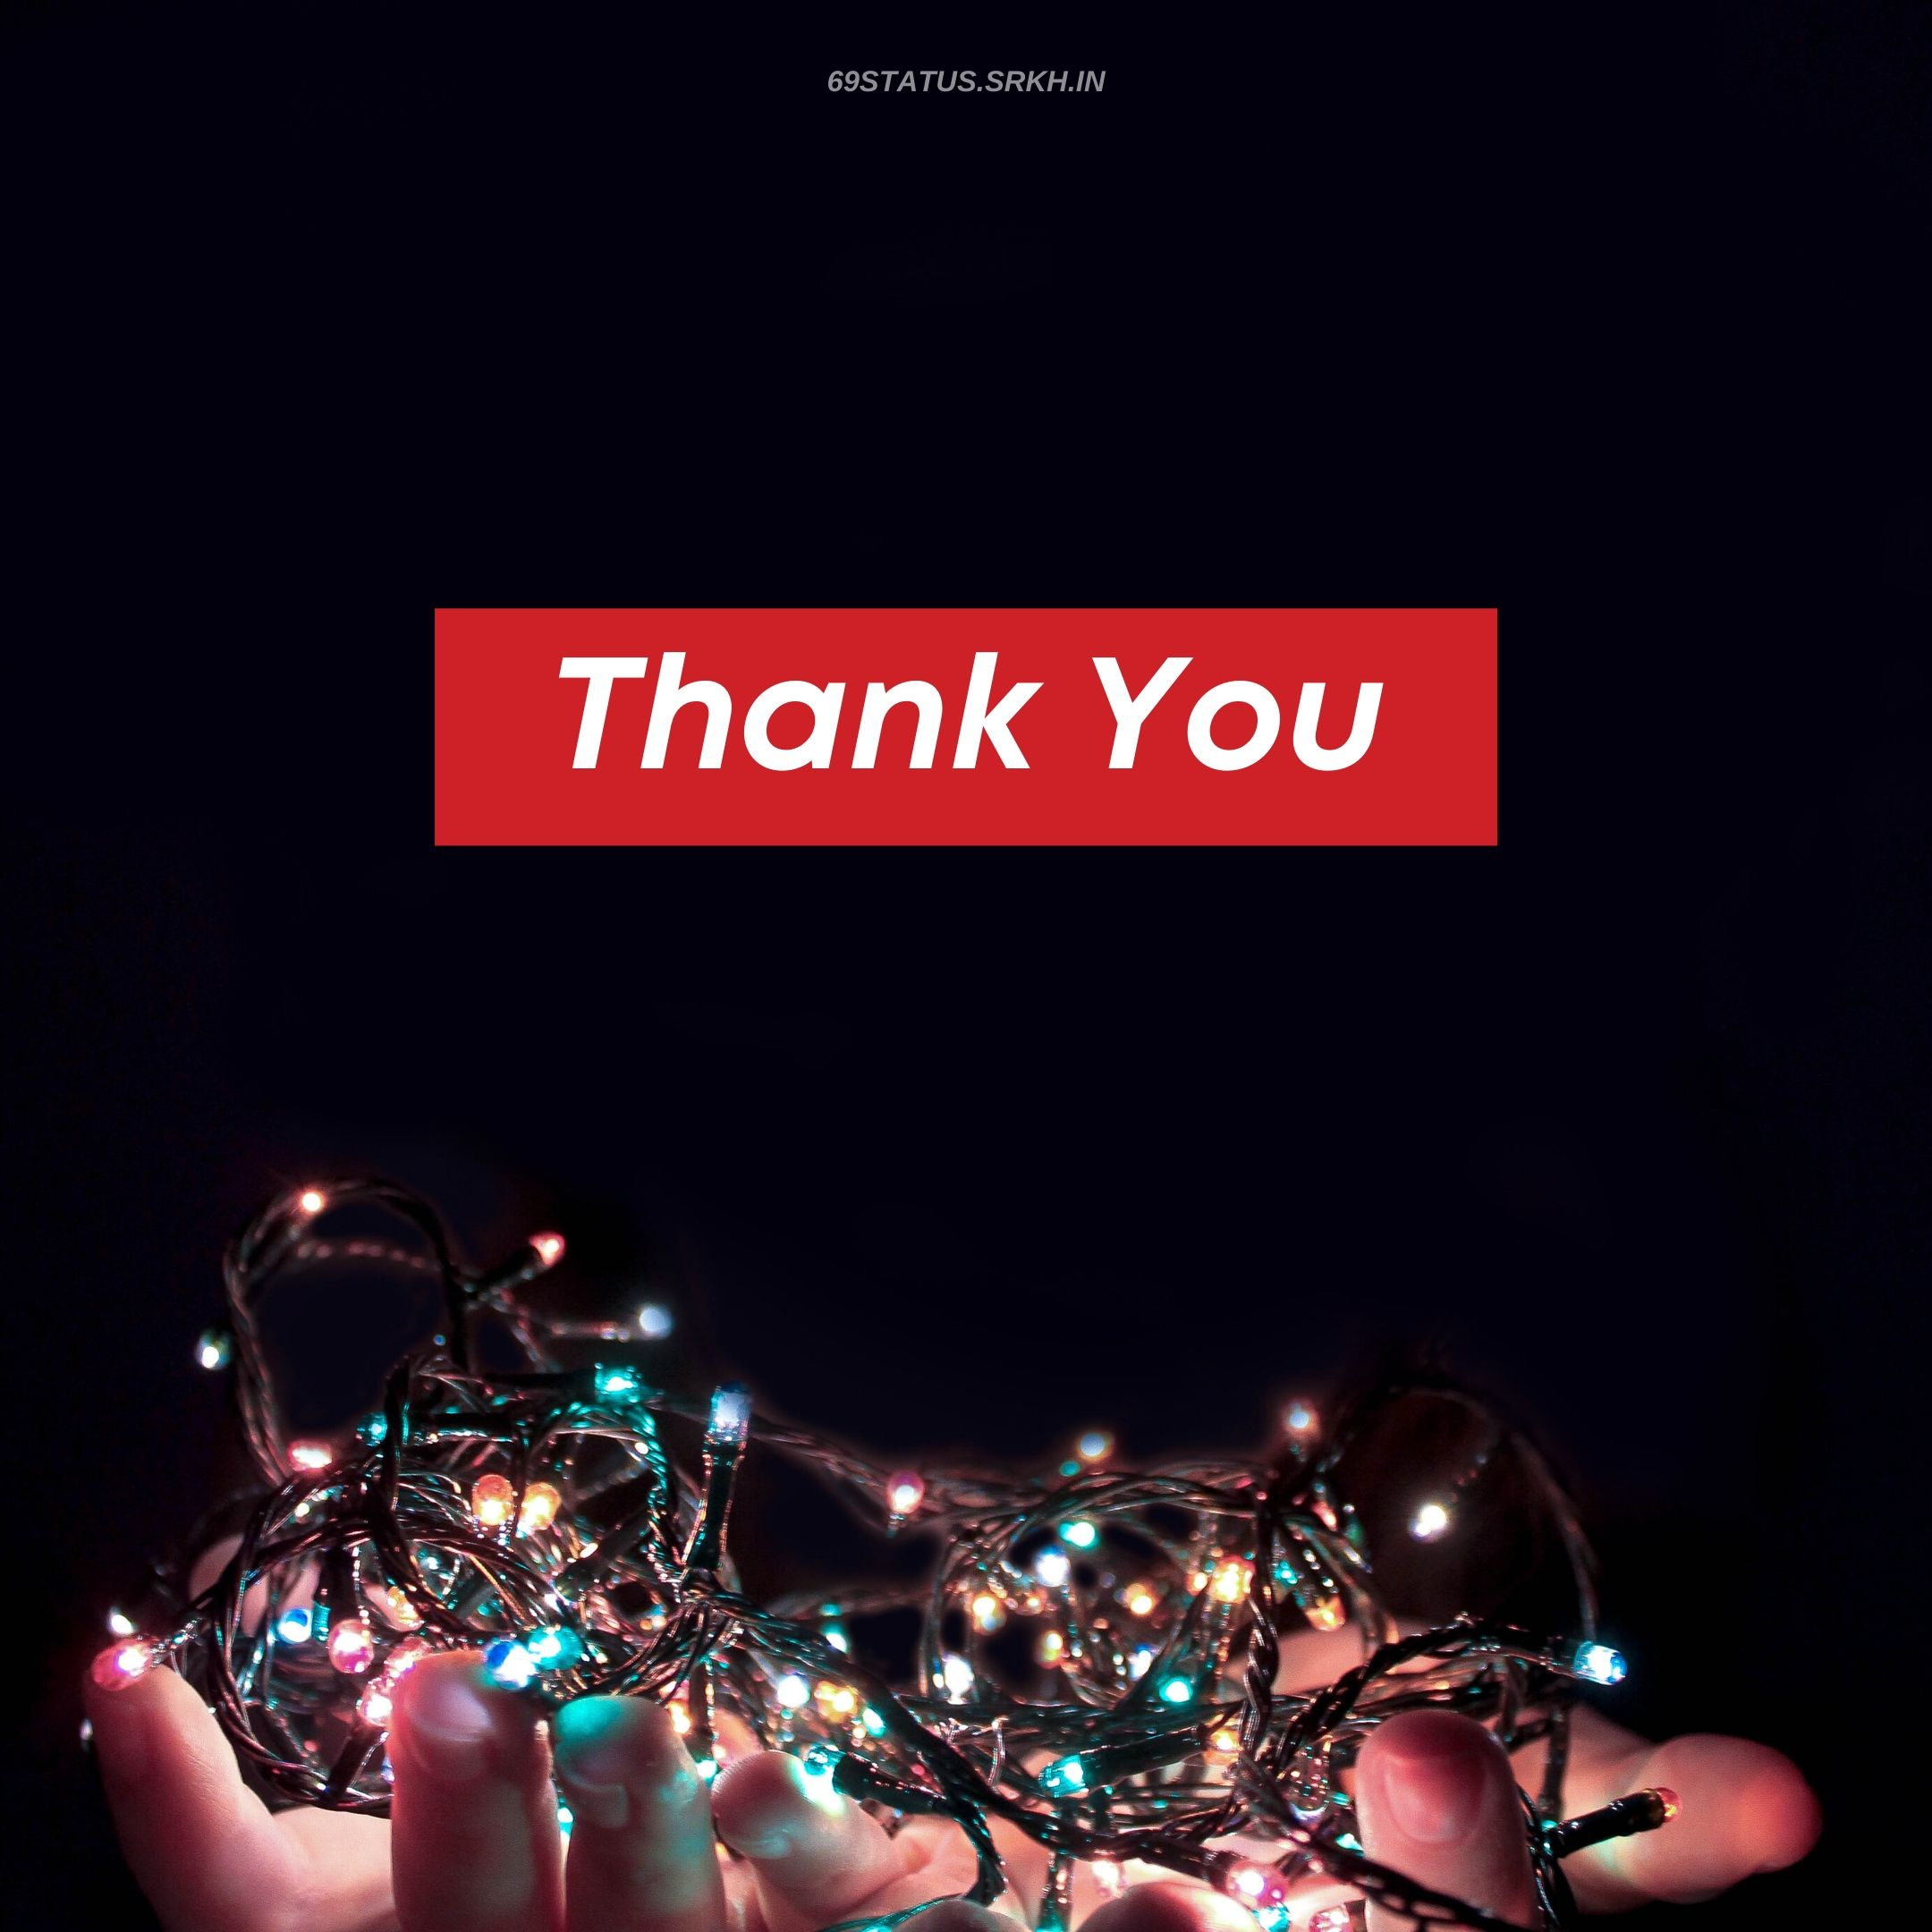 Thank You Background Images full HD free download.